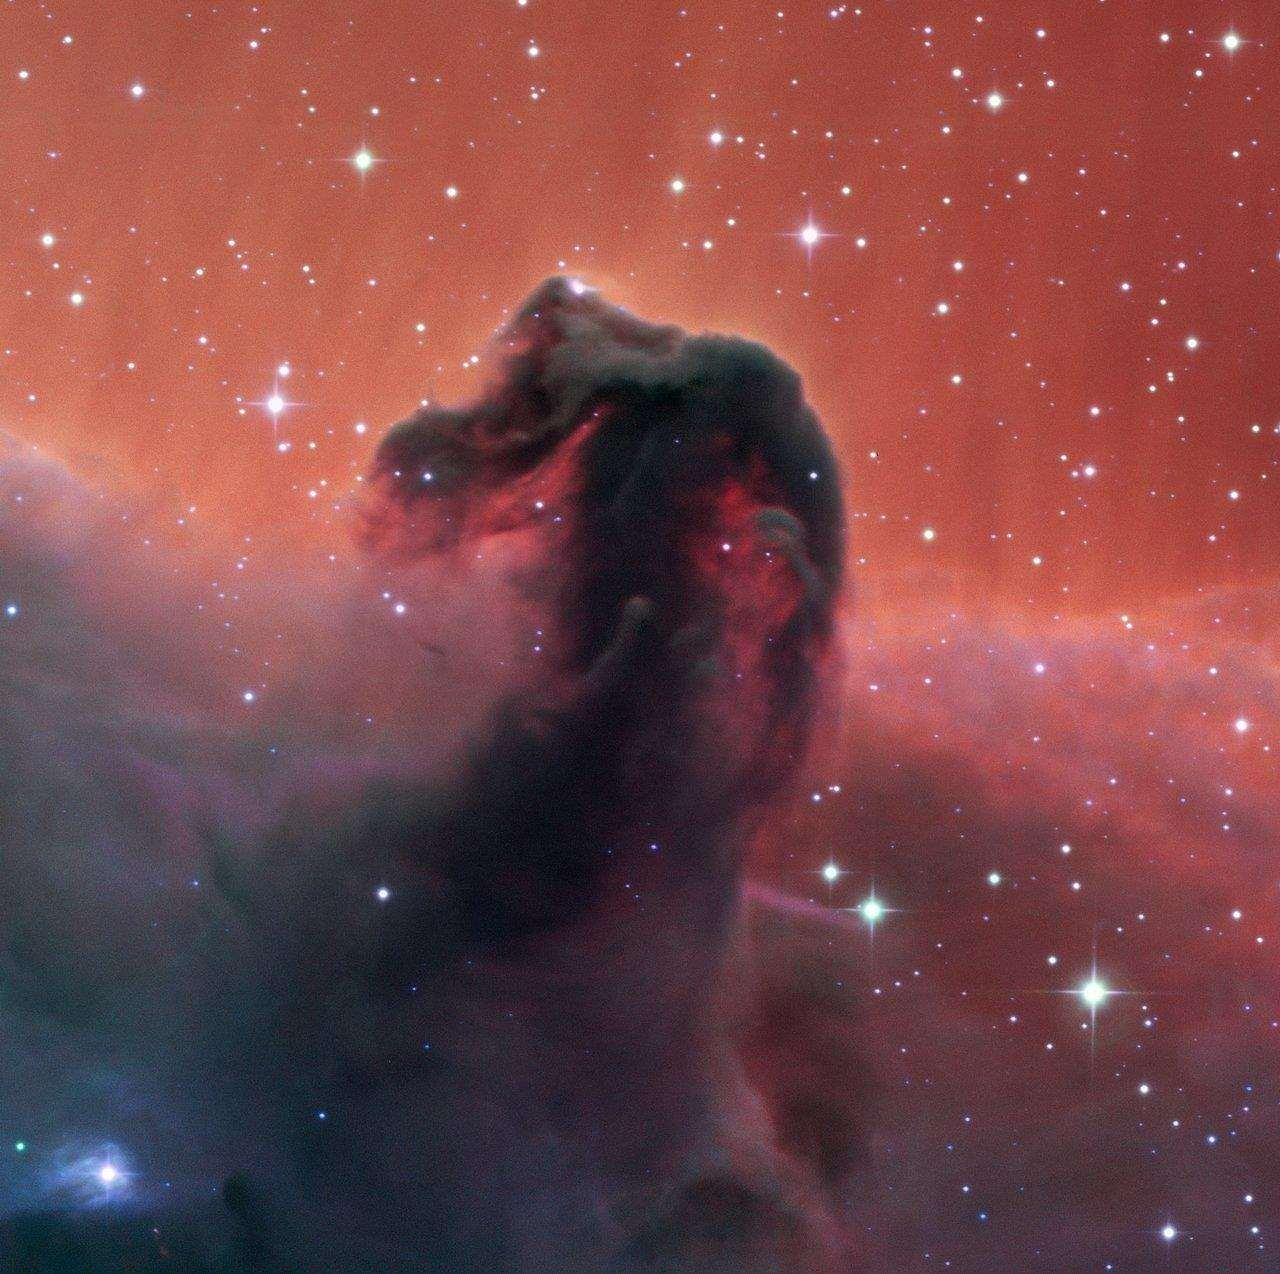 This first light image from the Callisto telescope at the SPECULOOS Southern Observatory (SSO) shows the famous Horsehead Nebula . First light for a newly commissioned telescope is a tremendously exciting time, and usually well-known astronomical objects such as this are captured to celebrate a new telescope commencing operations. The SSO is installed at ESO's Paranal Observatory in the vast Atacama Desert, Chile, and consists of four 1-metre planet-hunting telescopes. The project's telescopes are named after Jupiter's Galilean moons, and are neighbours of ESO's Very Large Telescope and VISTA . SPECULOOS will focus on detecting Earth-sized planets orbiting nearby ultra-cool stars and brown dwarfs. Picture: SPECULOOS Team/E. Jehin/ESO (6365302)